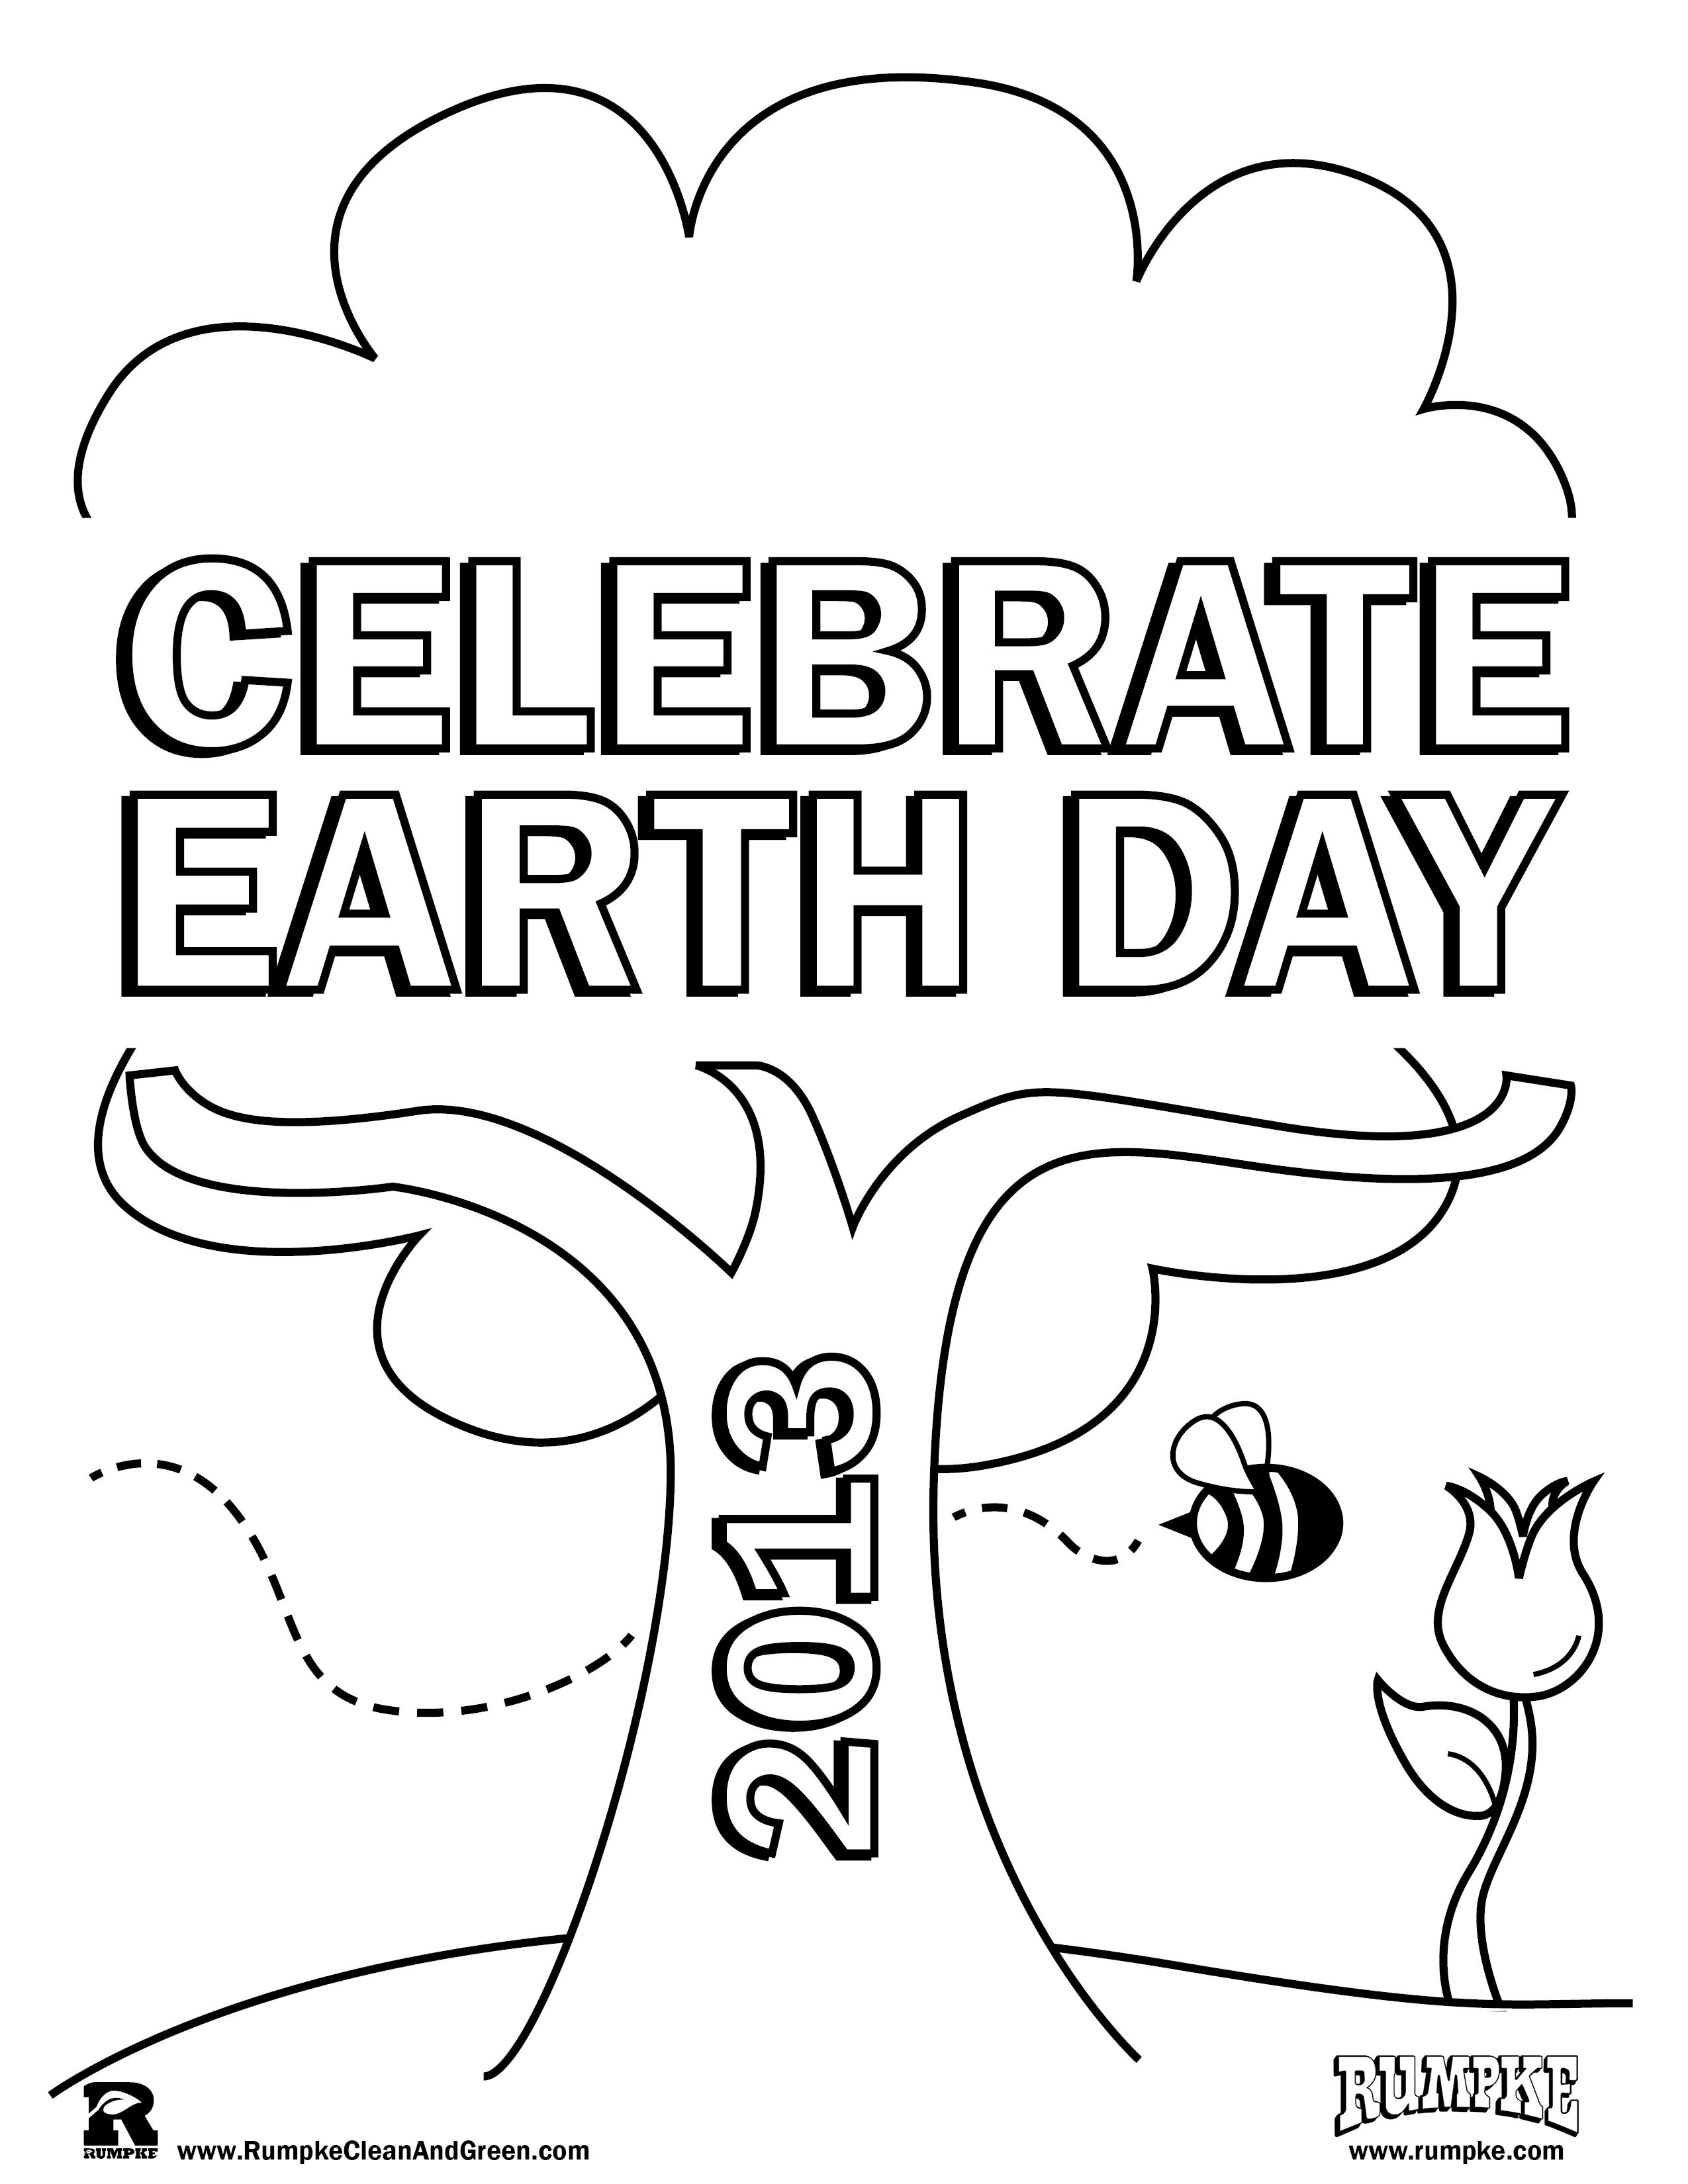 earth day coloring pages 2013 - photo#15